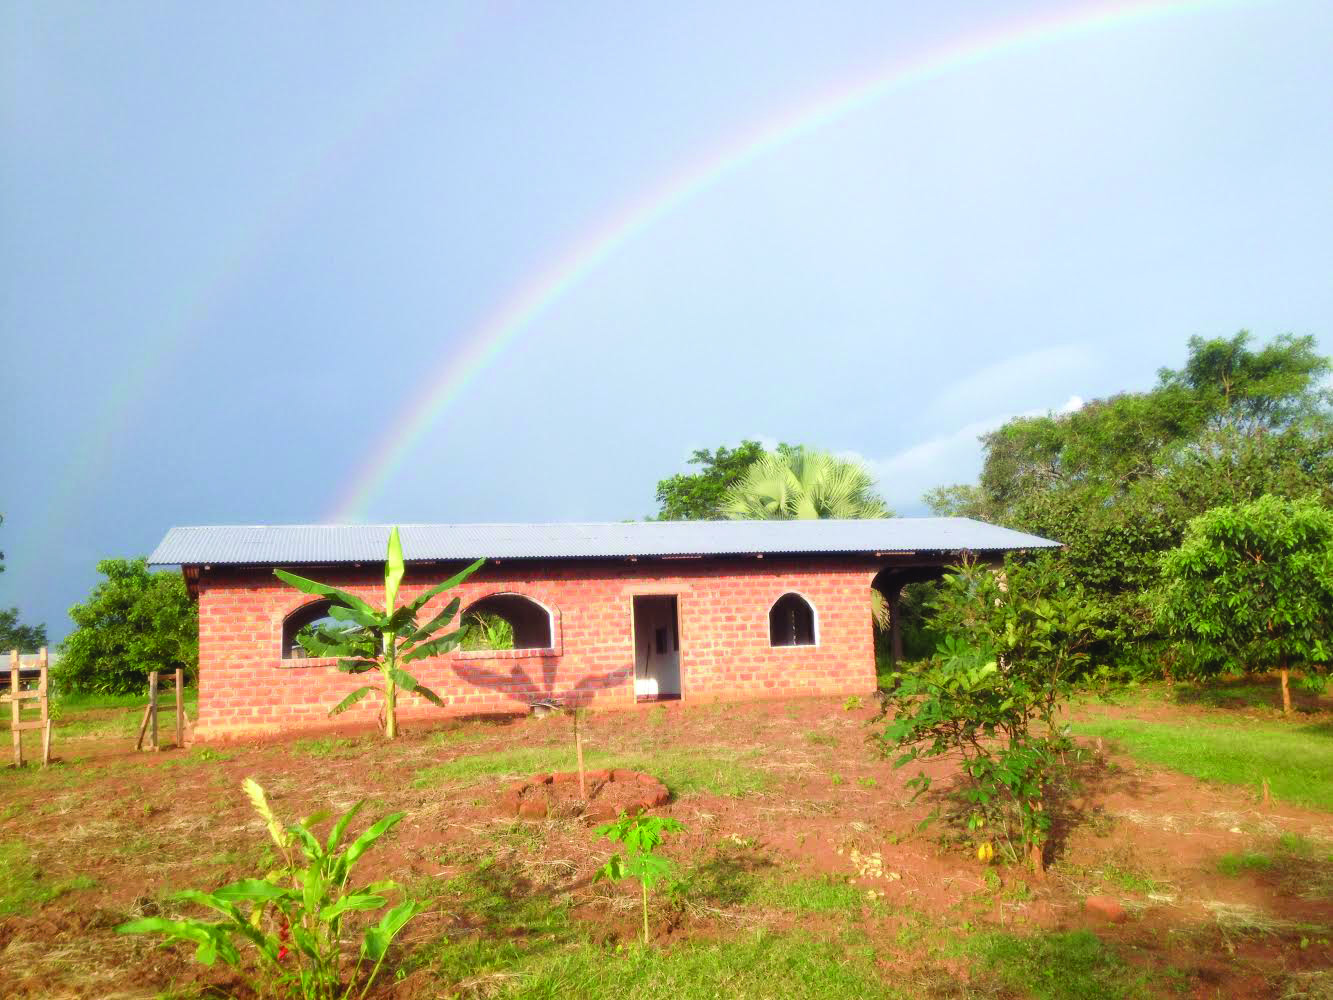 Timothy helped to landscape this agricultural training classroom in Gamboula, Central African Republic